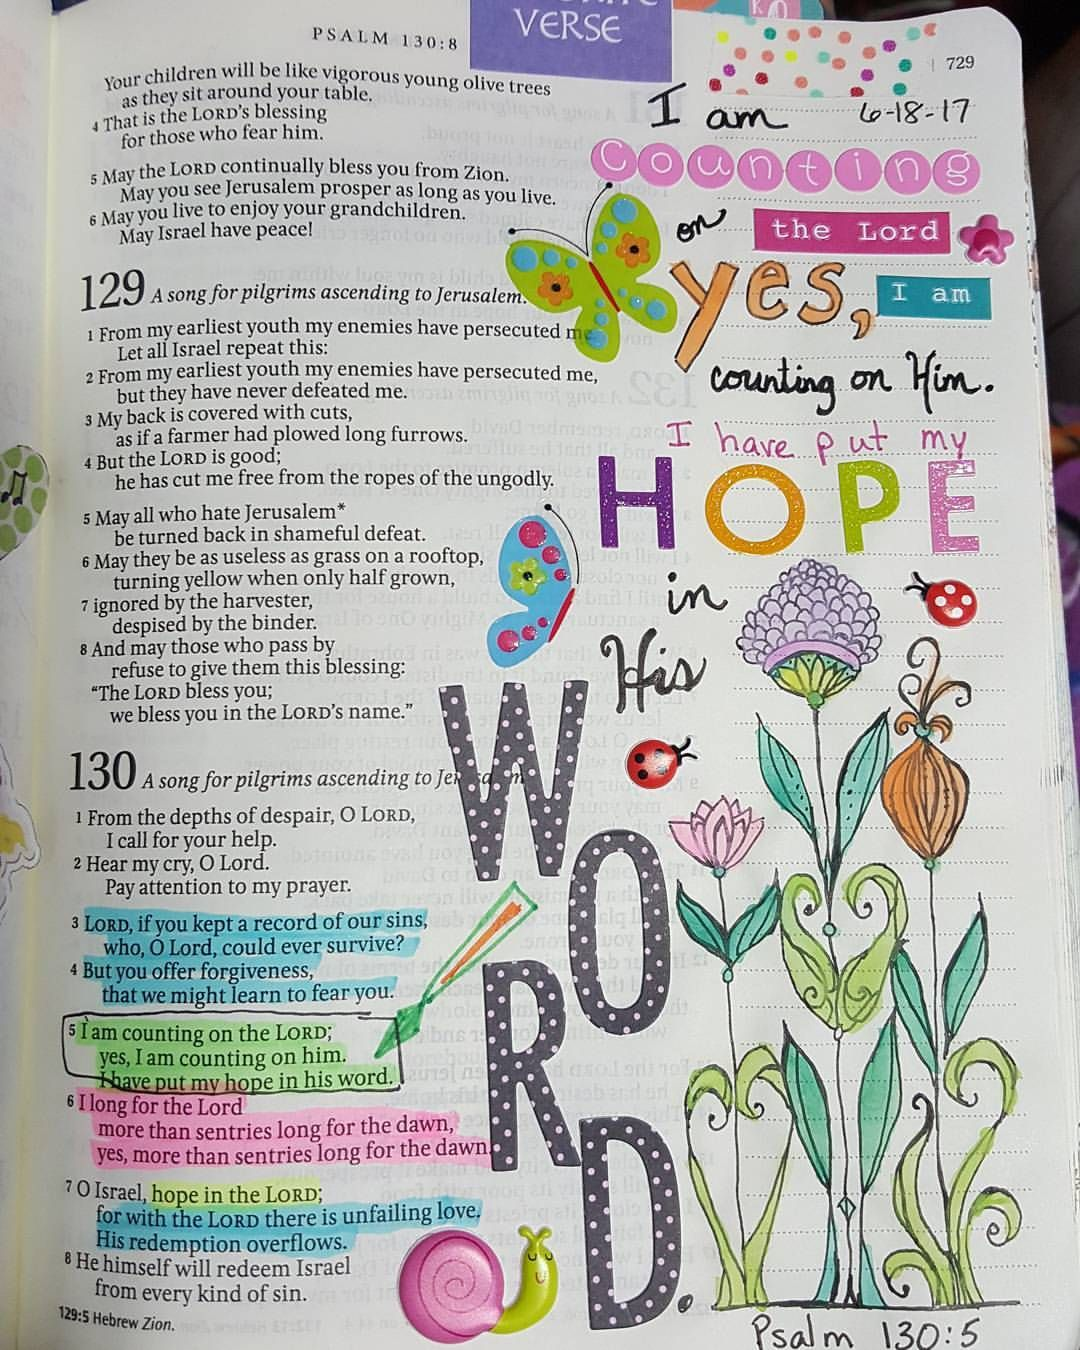 Pin by Michele Borntreger on Bible Journaling | Psalm 130, Psalms, Bible